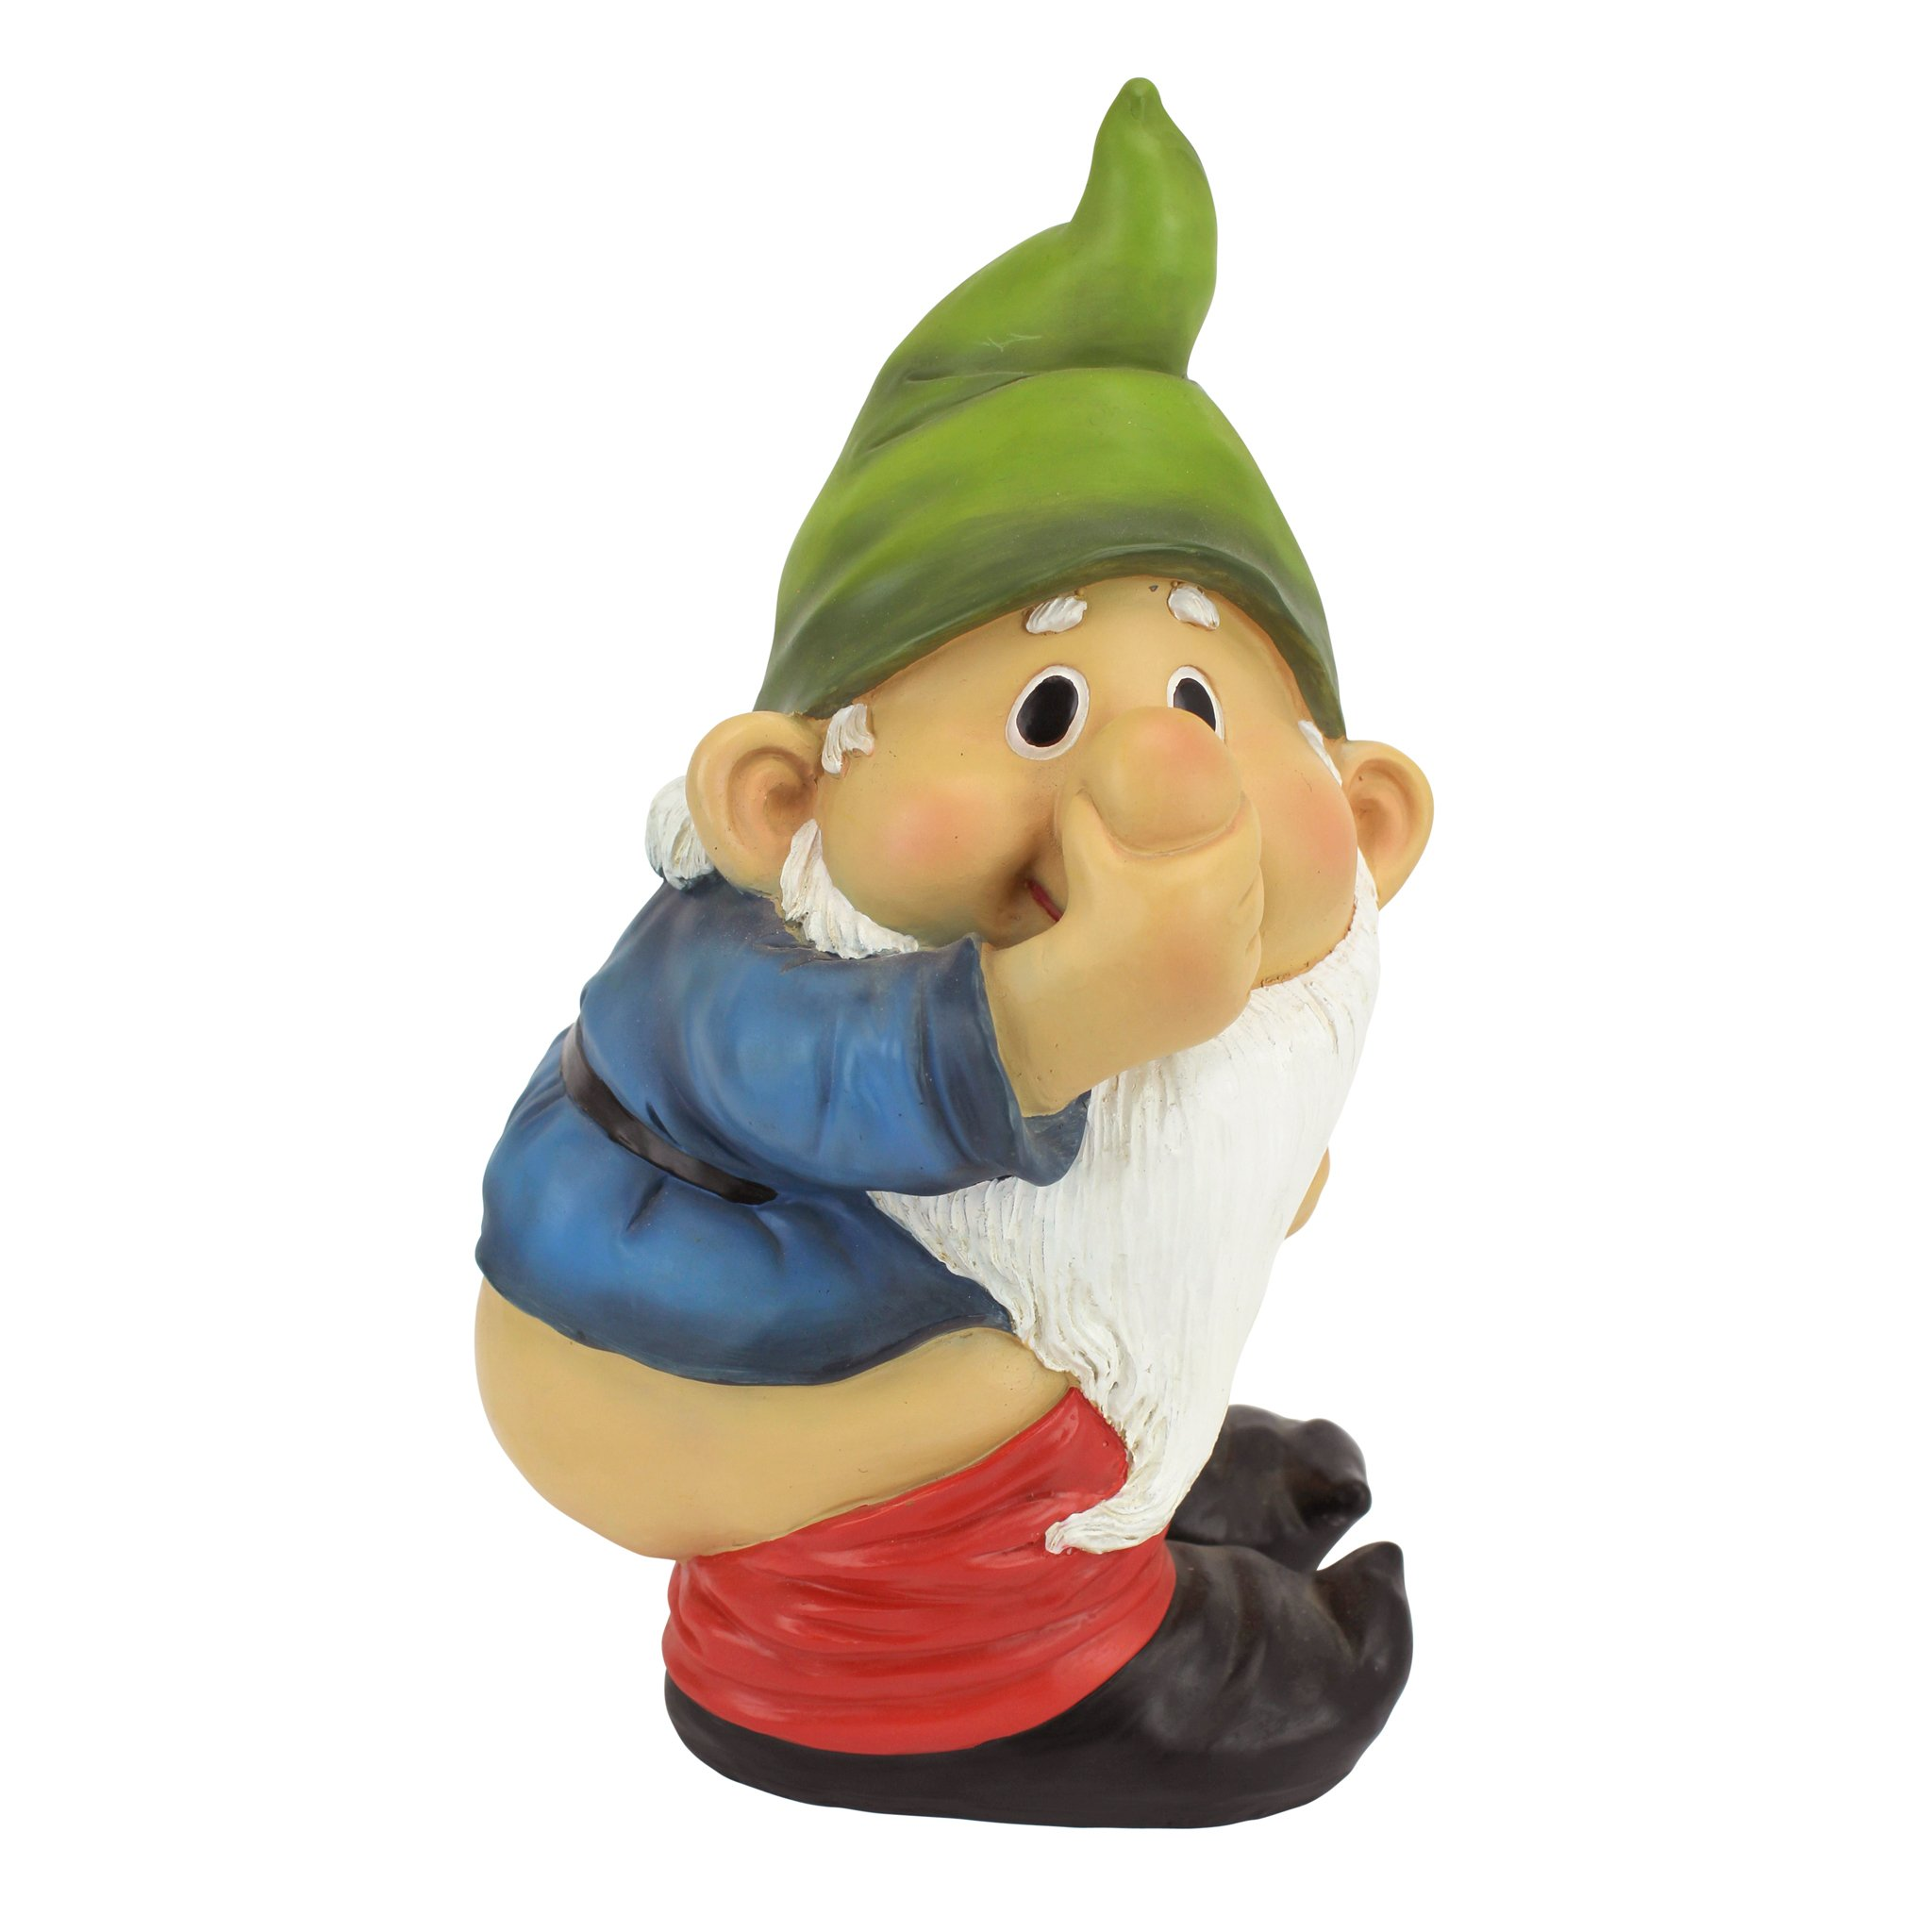 Gnome In Garden: Stinky The Garden Gnome